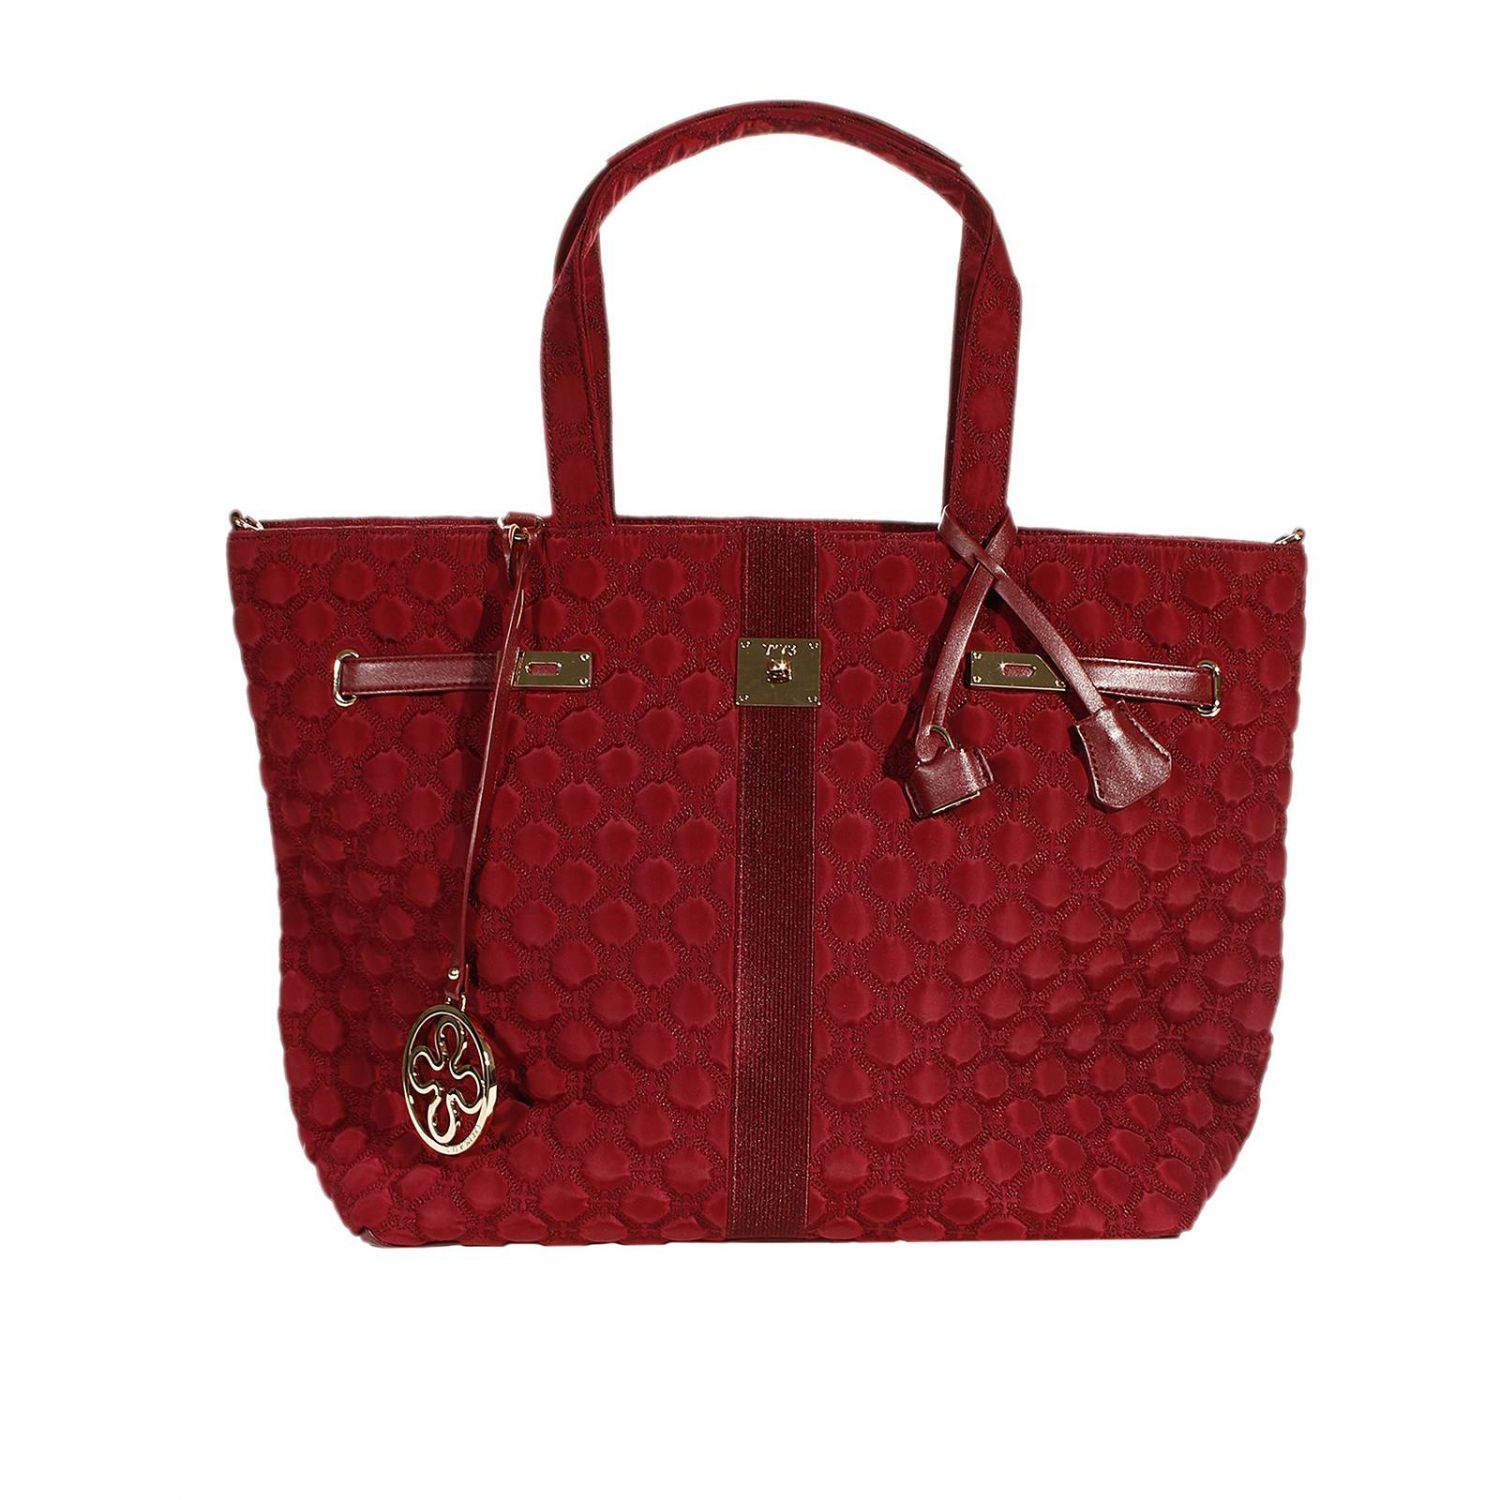 v73 handbag quilted nylon bag shopping in red burgundy lyst. Black Bedroom Furniture Sets. Home Design Ideas